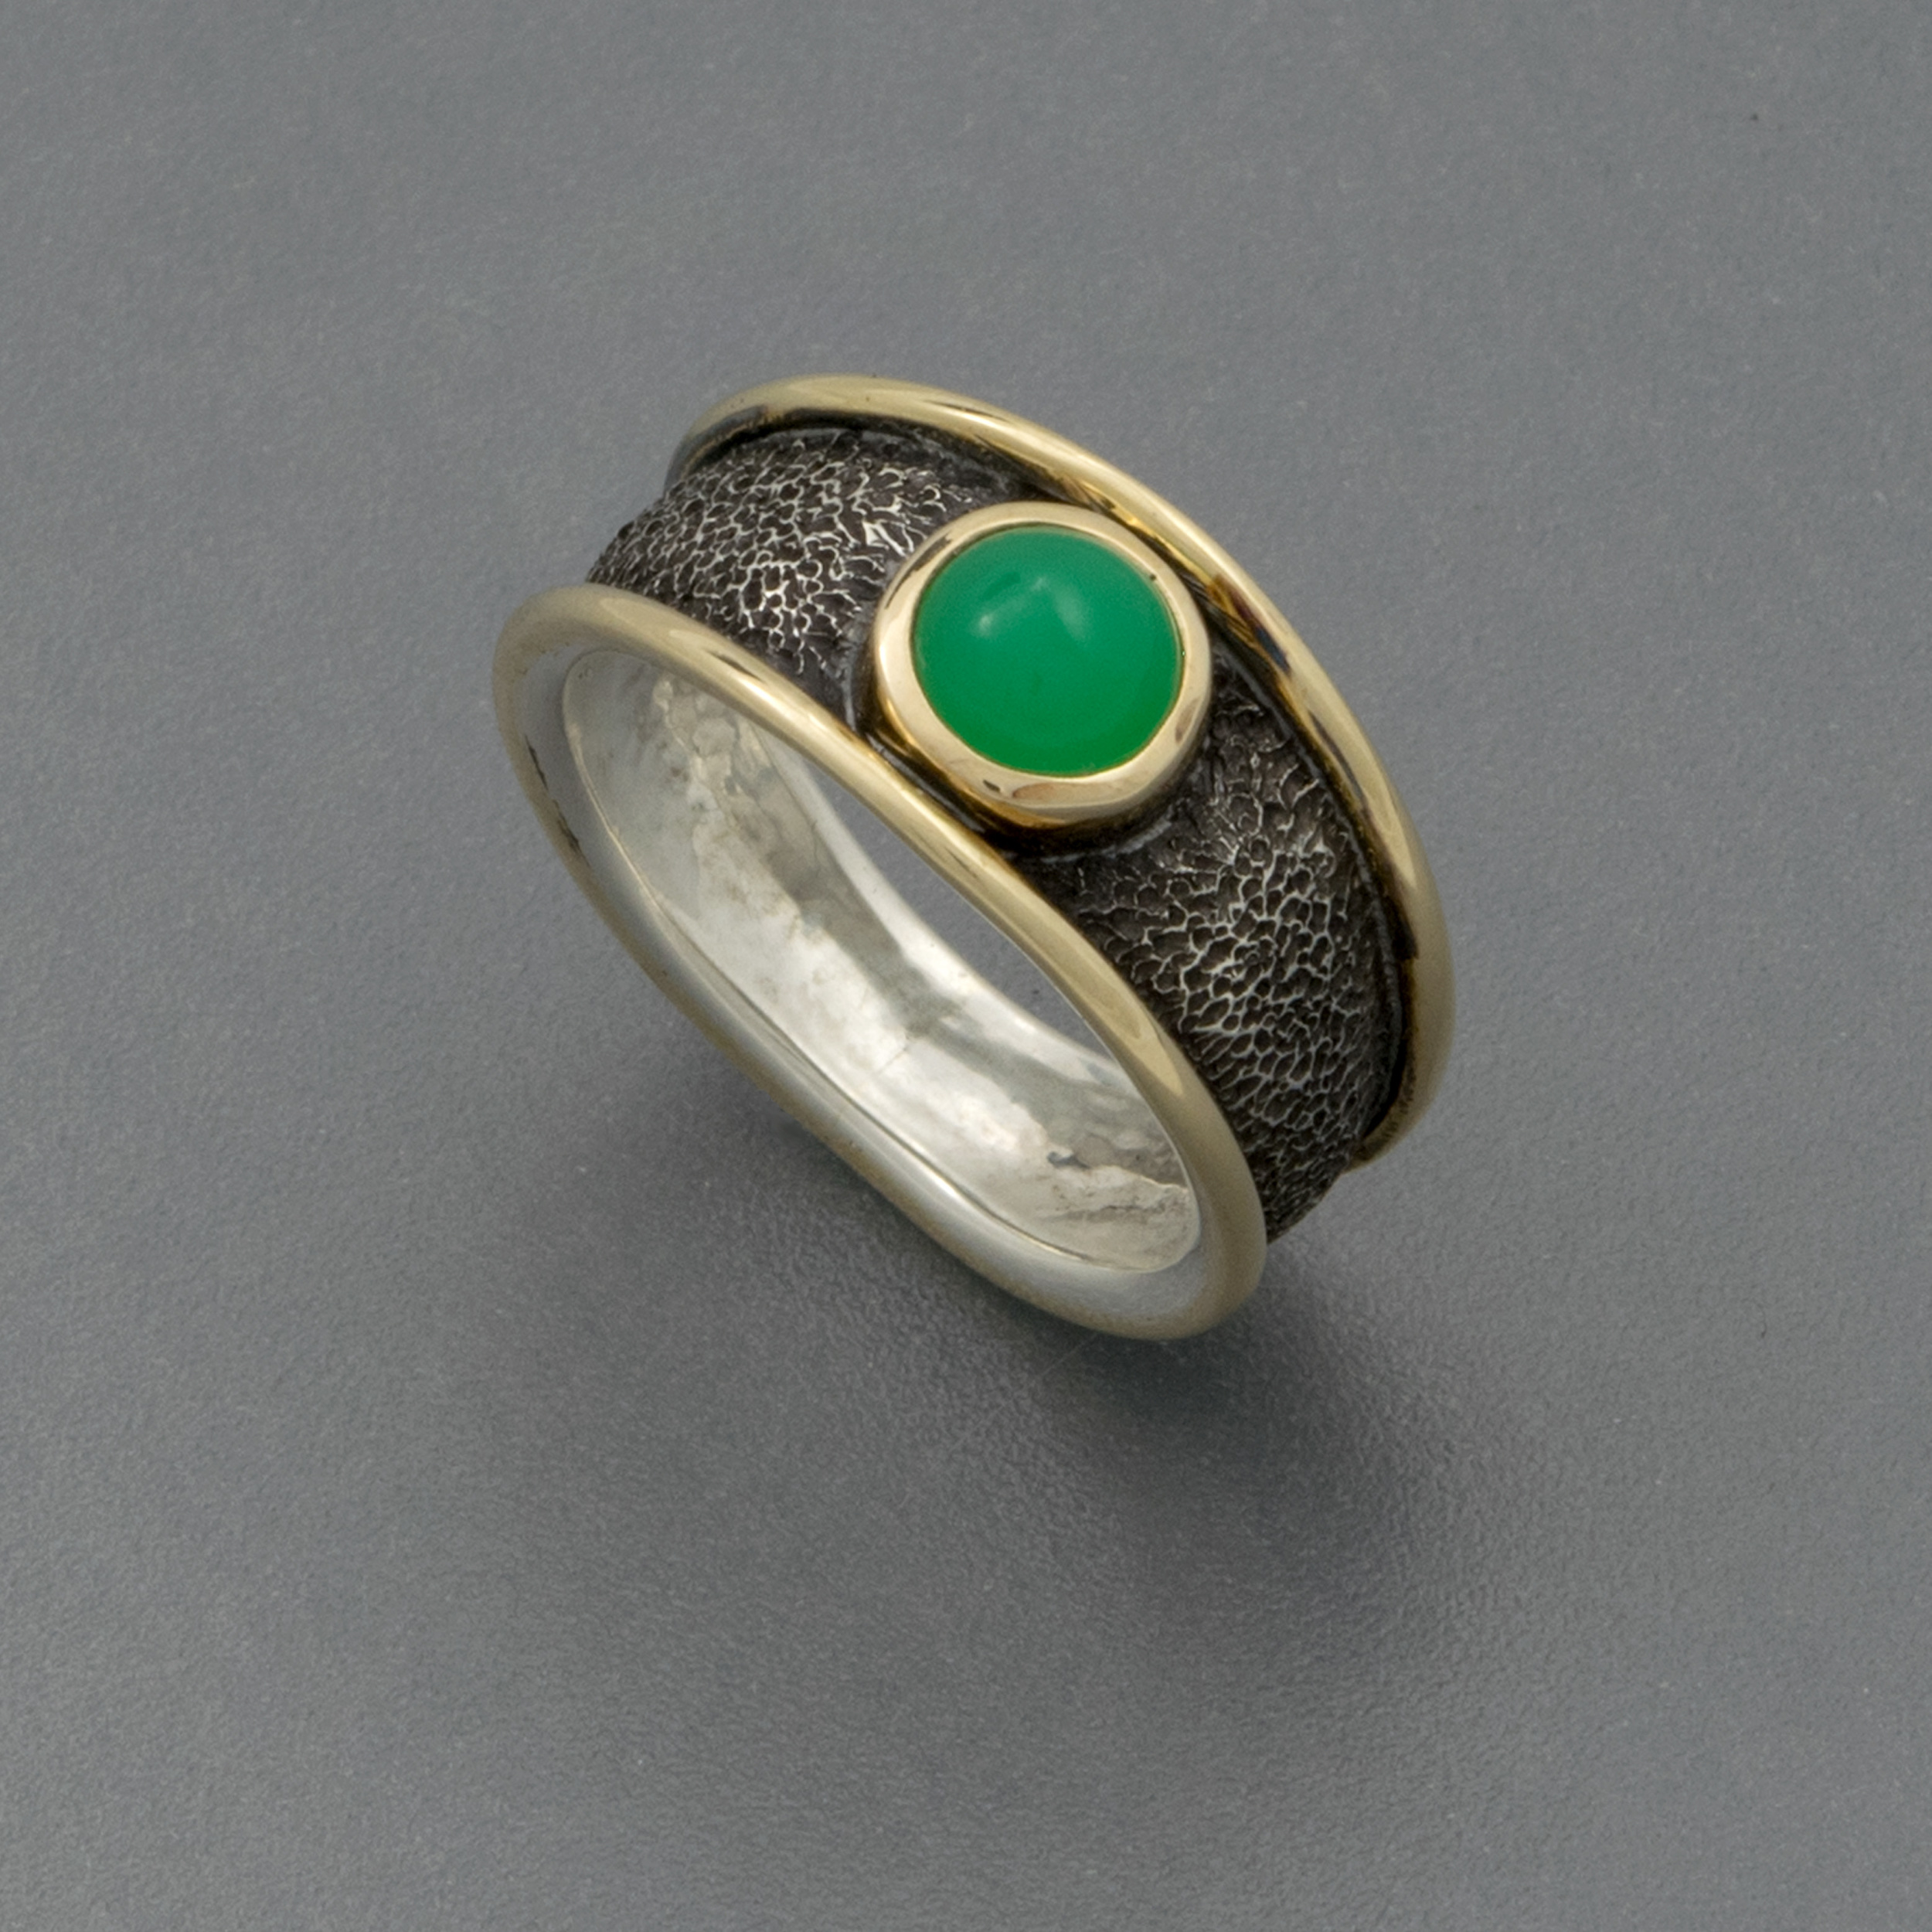 Ring Chrysoprase Isometric.jpg